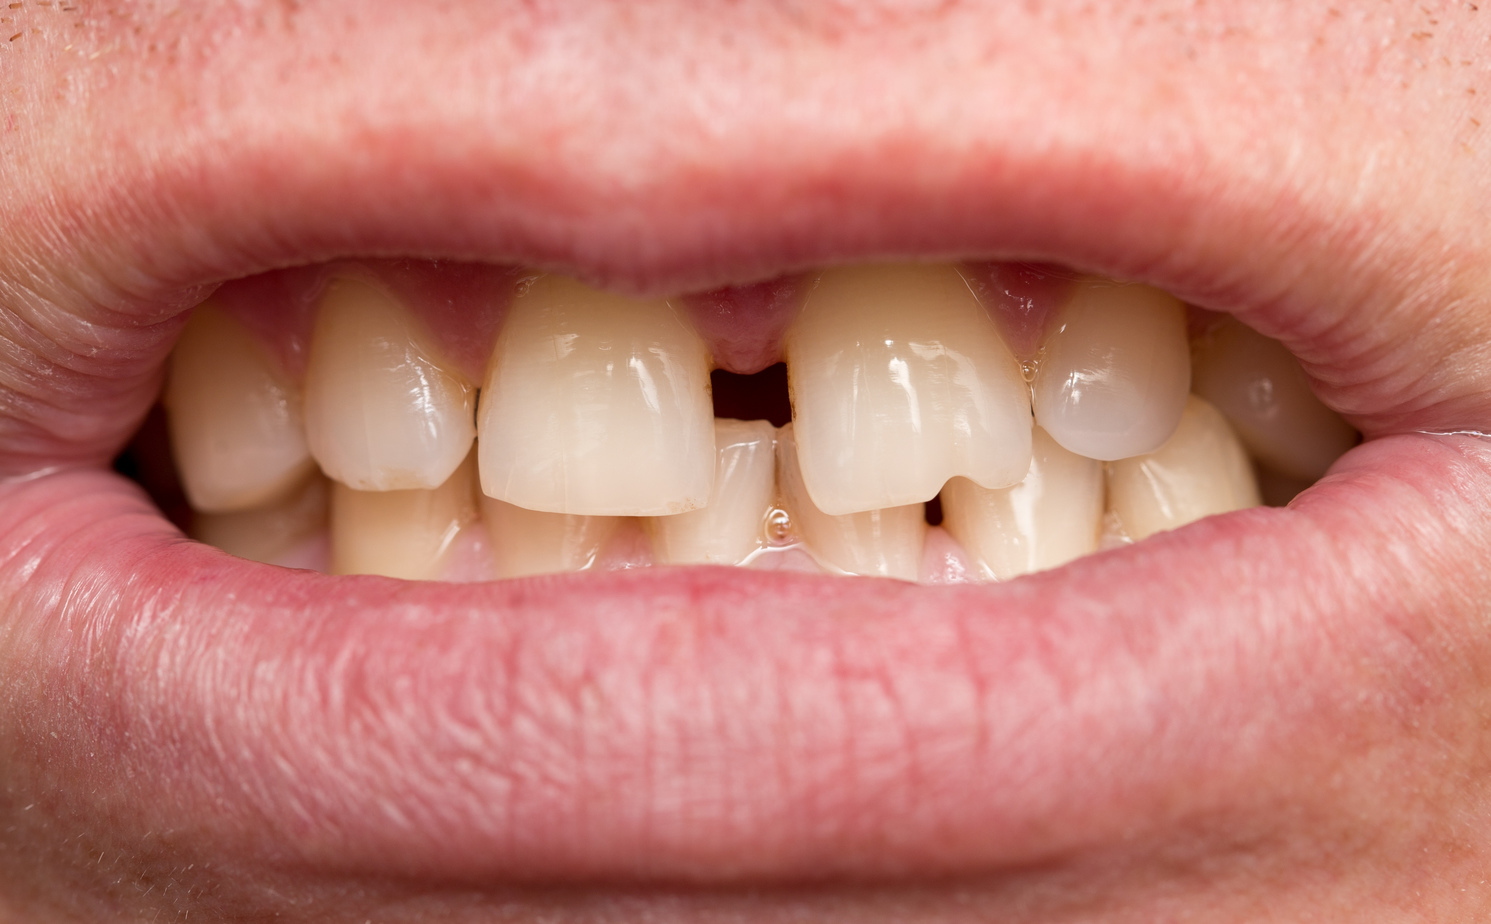 Grinding Your Teeth in Your Sleep May Lead to Crooked Teeth